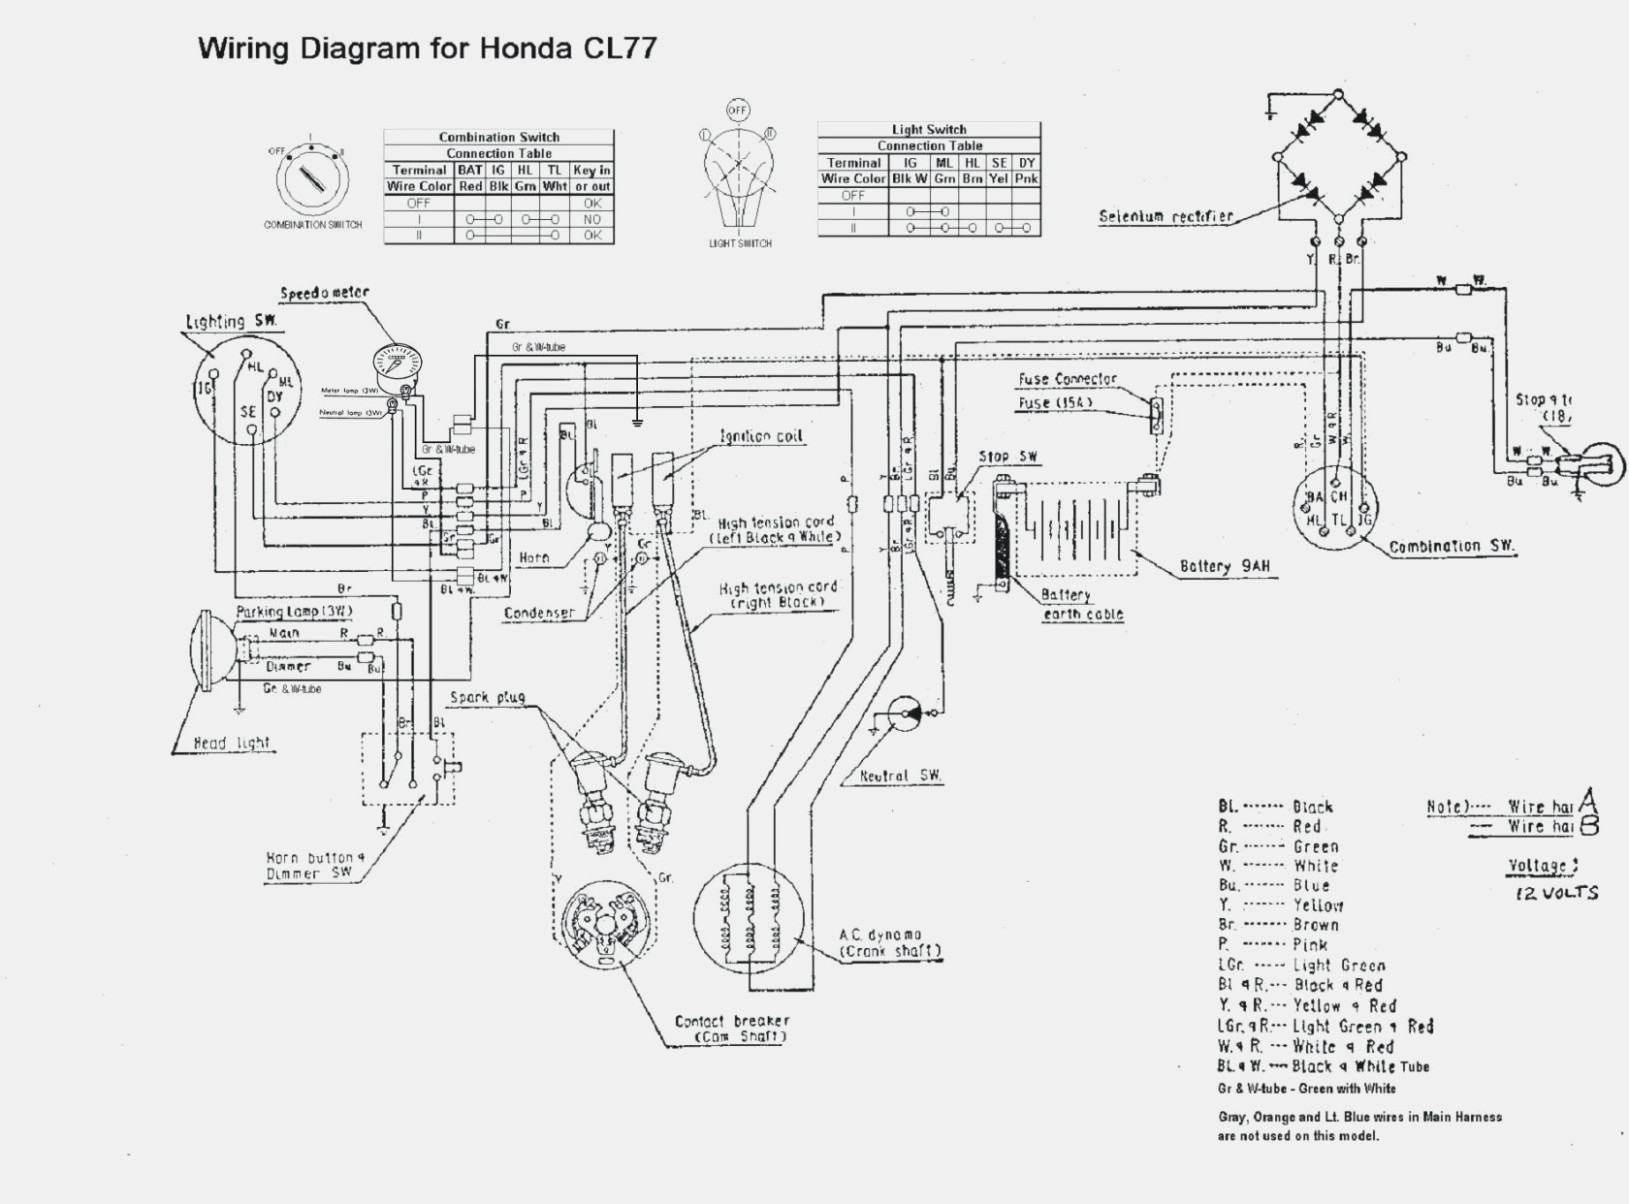 Mic Wiring Diagram from 2020cadillac.com